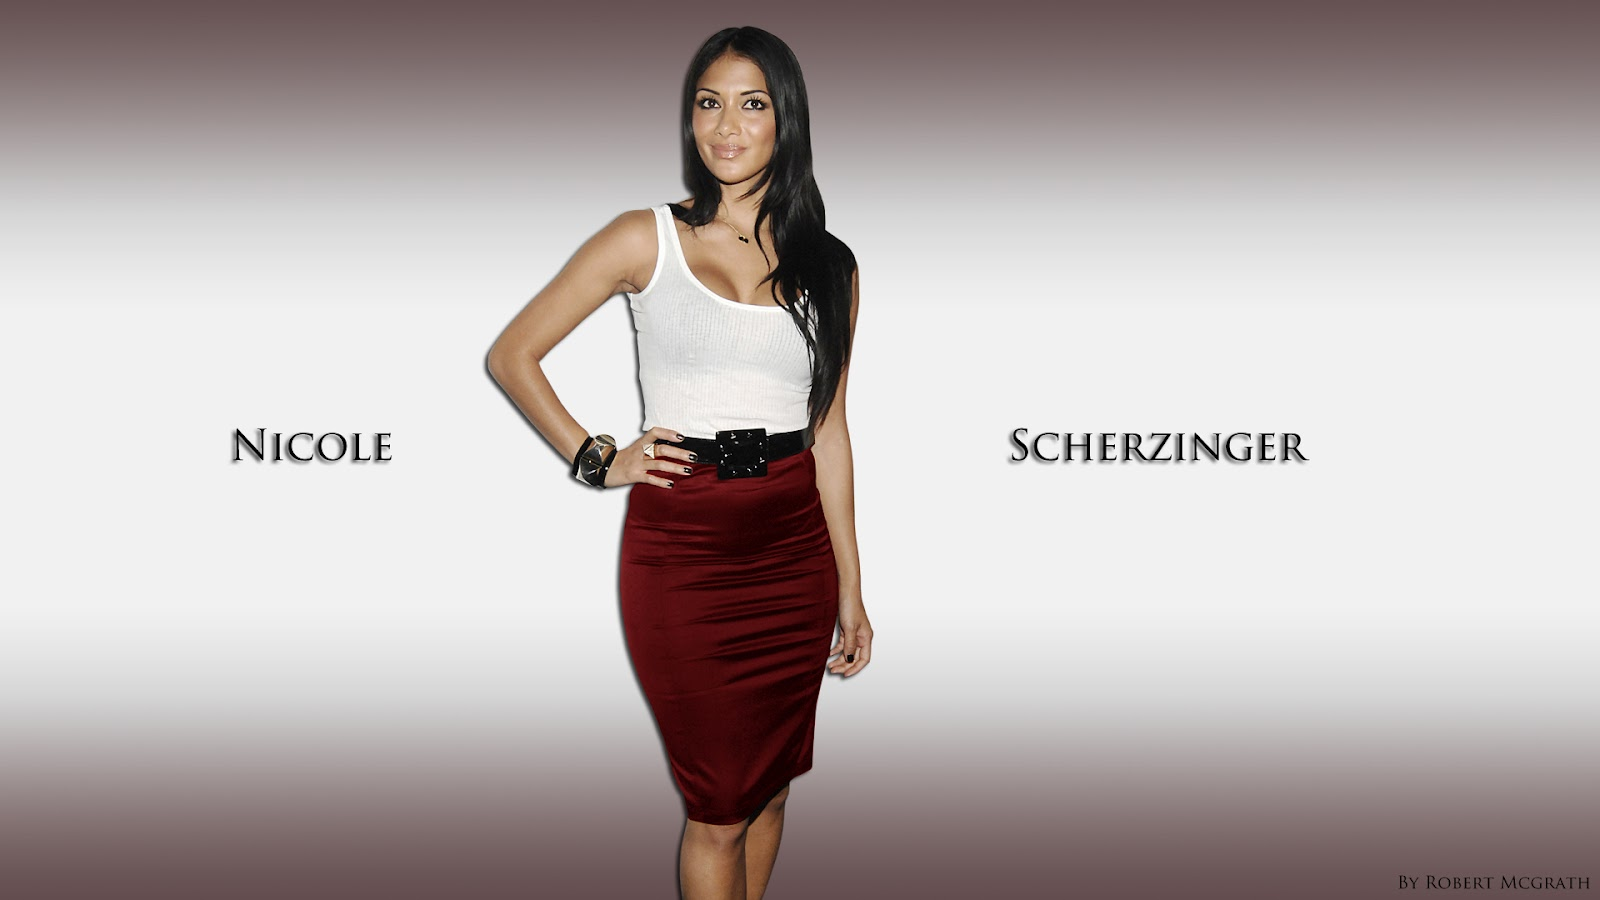 Nicole Scherzinger Wallpapers  The Sexy Pictures-5921